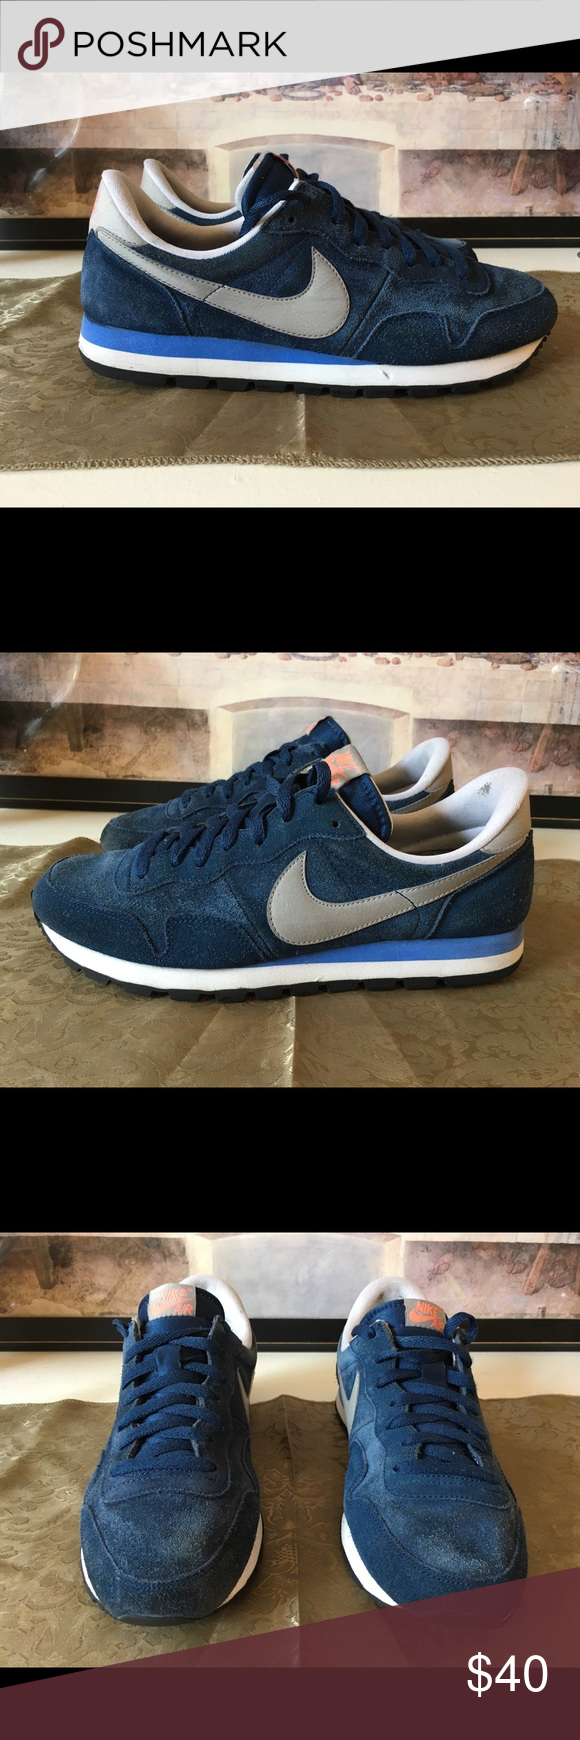 f62cea31ca709 Nike Air Pegasus 83 Suede Mens Size 10.5 My blue suede shoes!! Will show